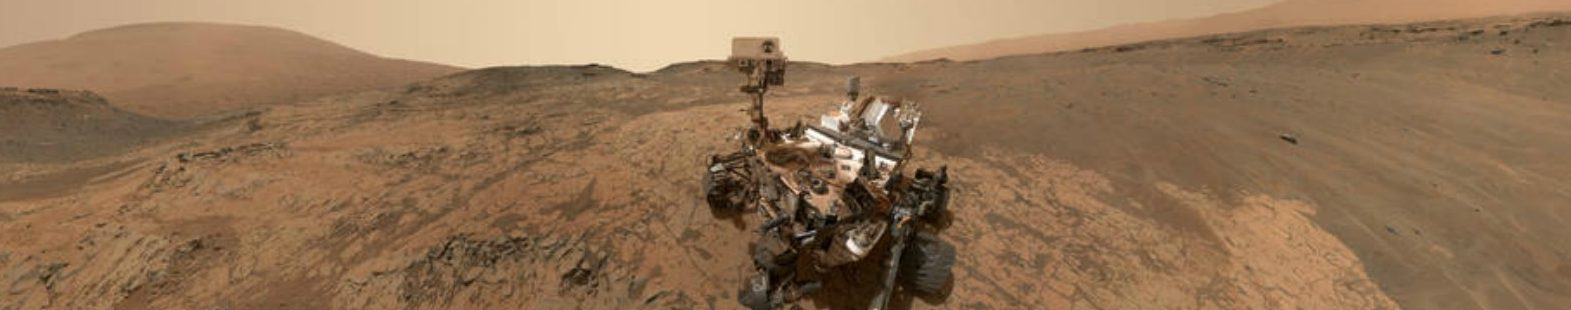 Photograph of the Curiosity rover on Mars